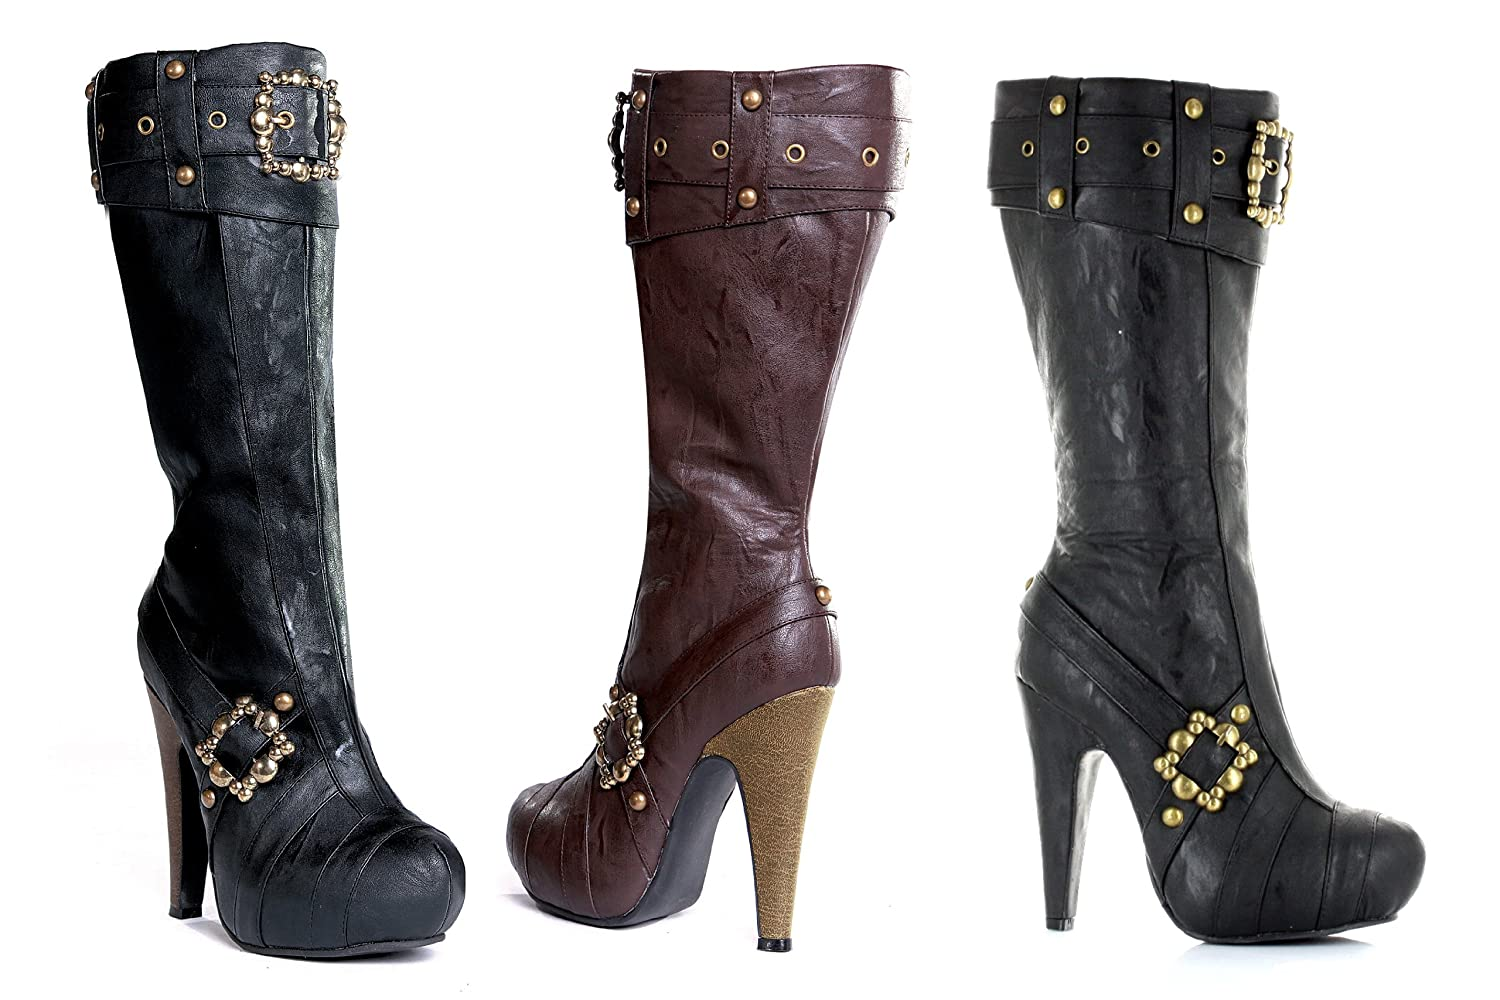 Women's Deluxe Black or Brown Pirate Boots - DeluxeAdultCostumes.com